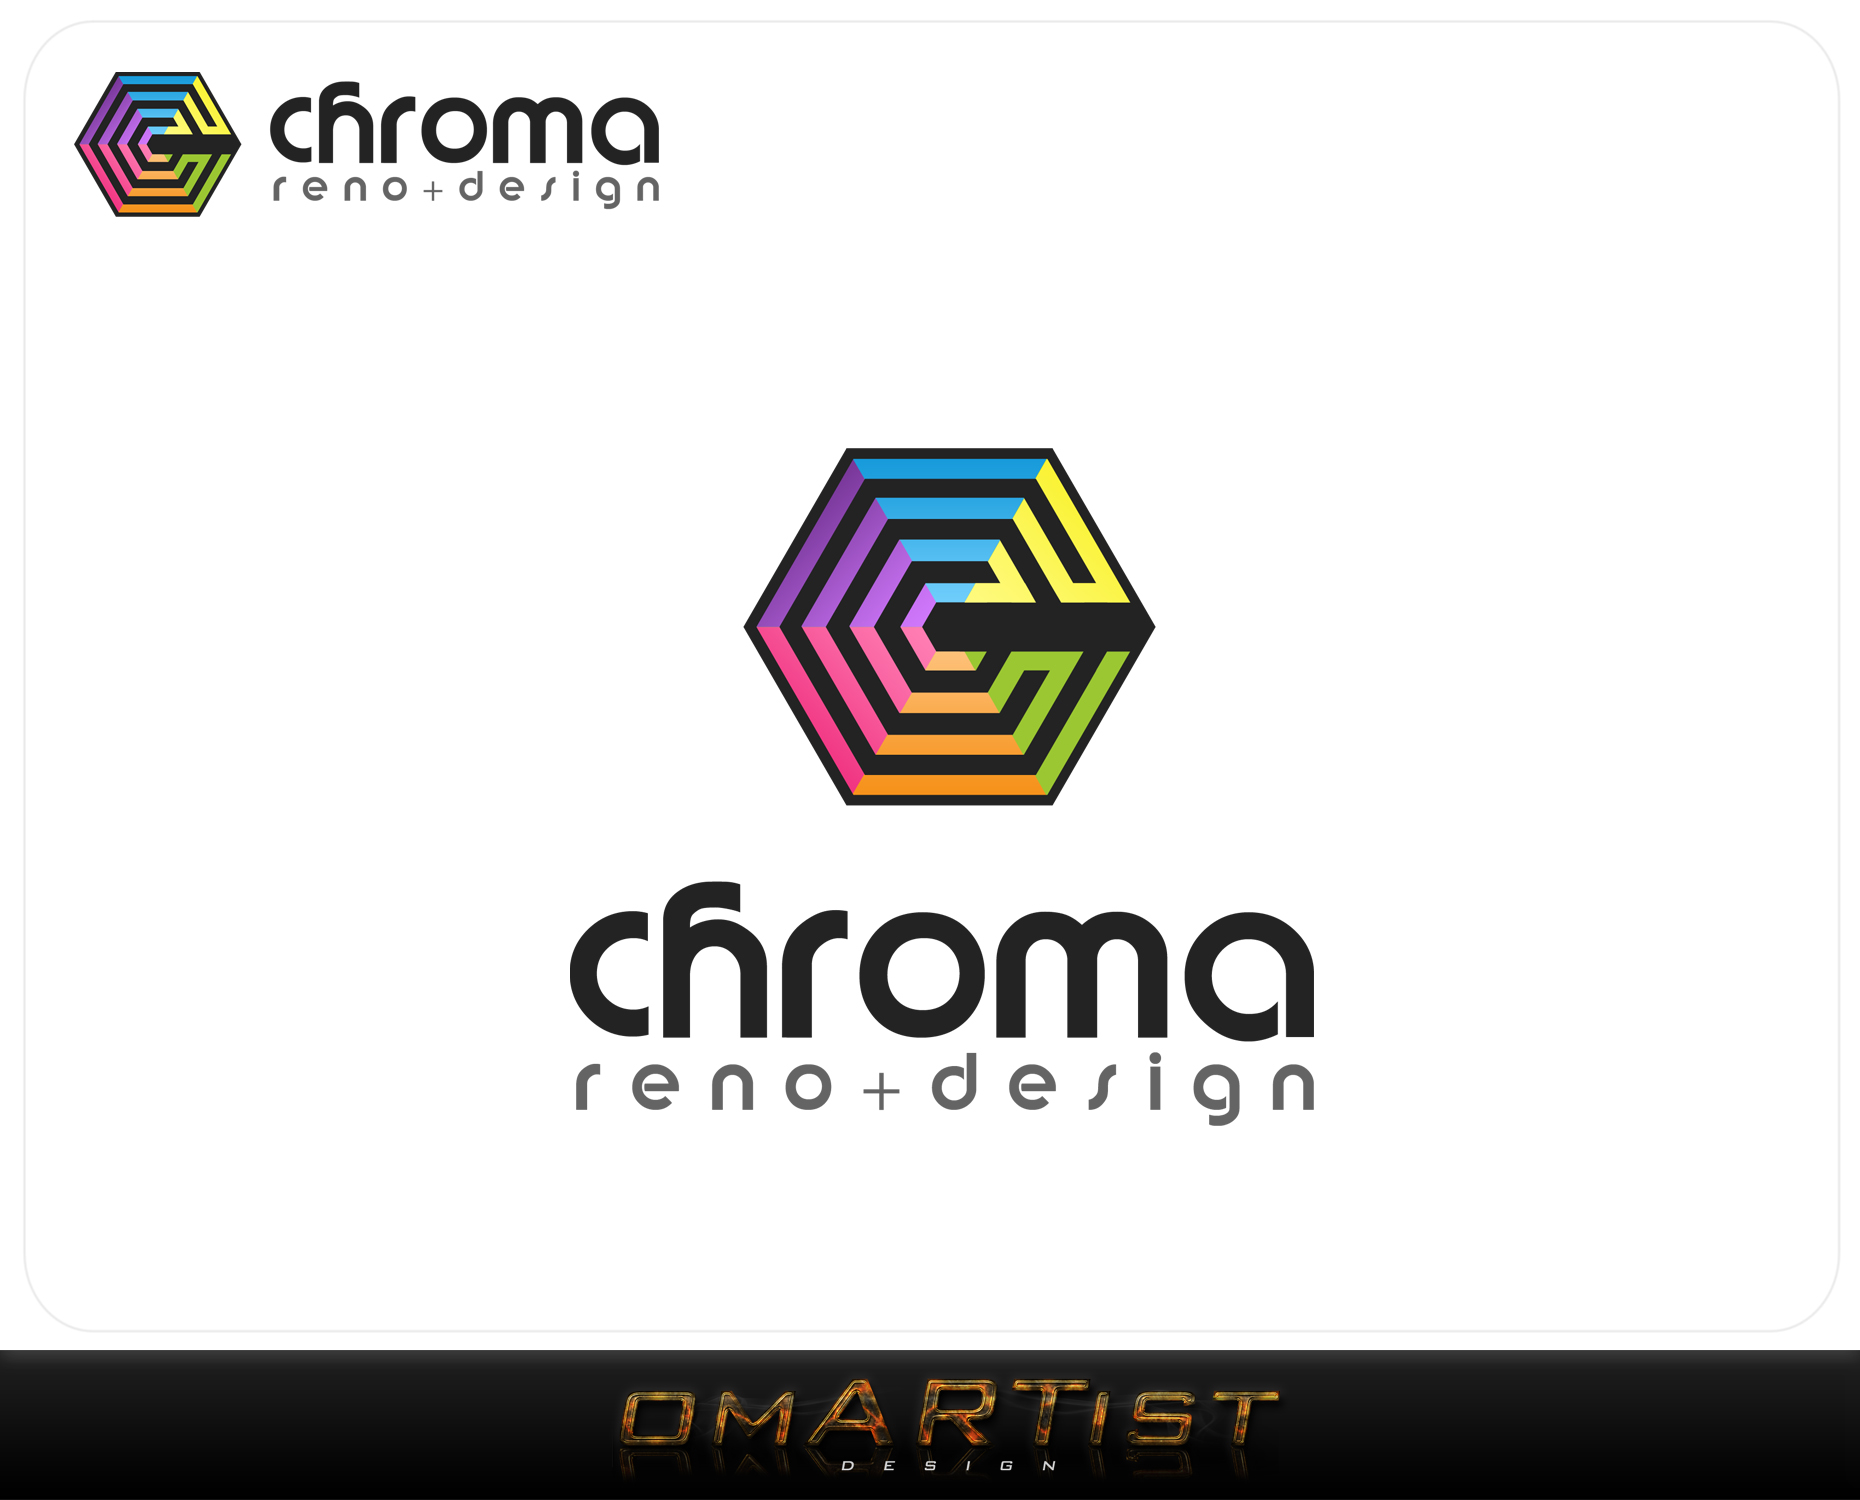 Logo Design by omARTist - Entry No. 121 in the Logo Design Contest Inspiring Logo Design for Chroma Reno+Design.